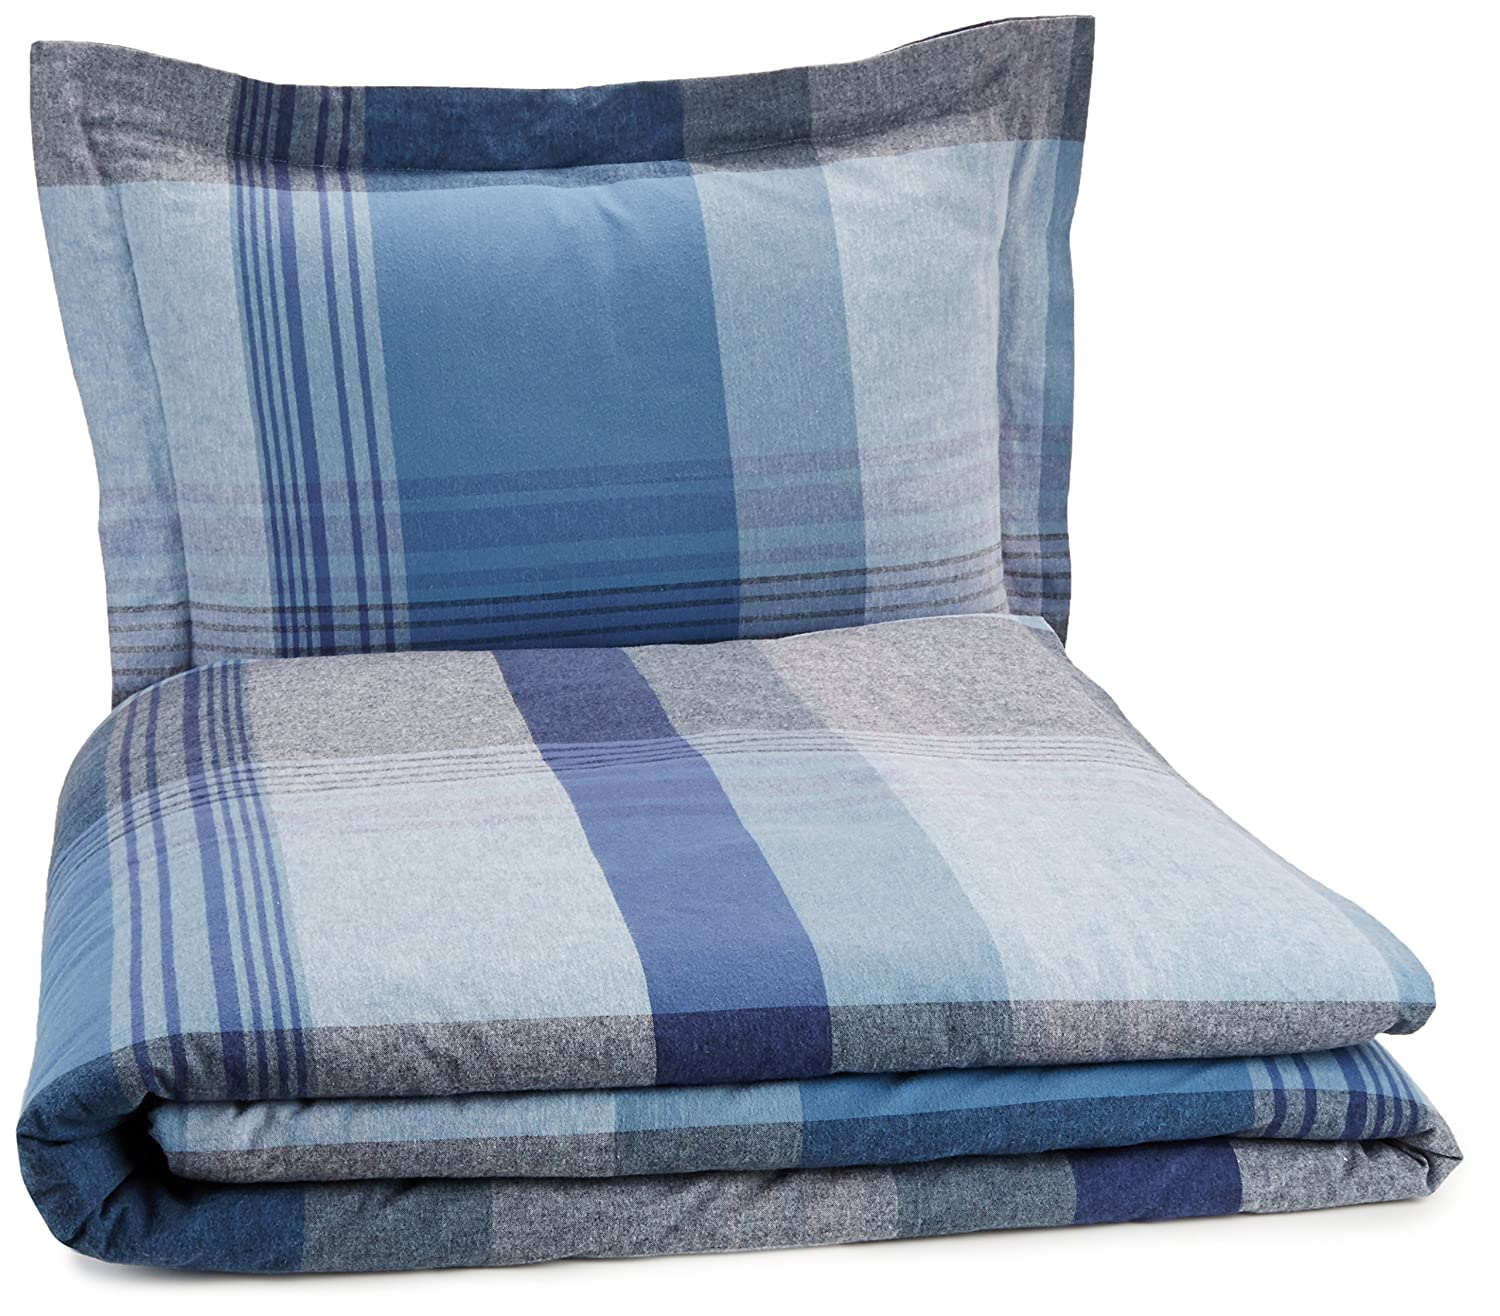 Pinzon Lightweight Cotton Flannel Duvet Set - Twin, Blue Plaid